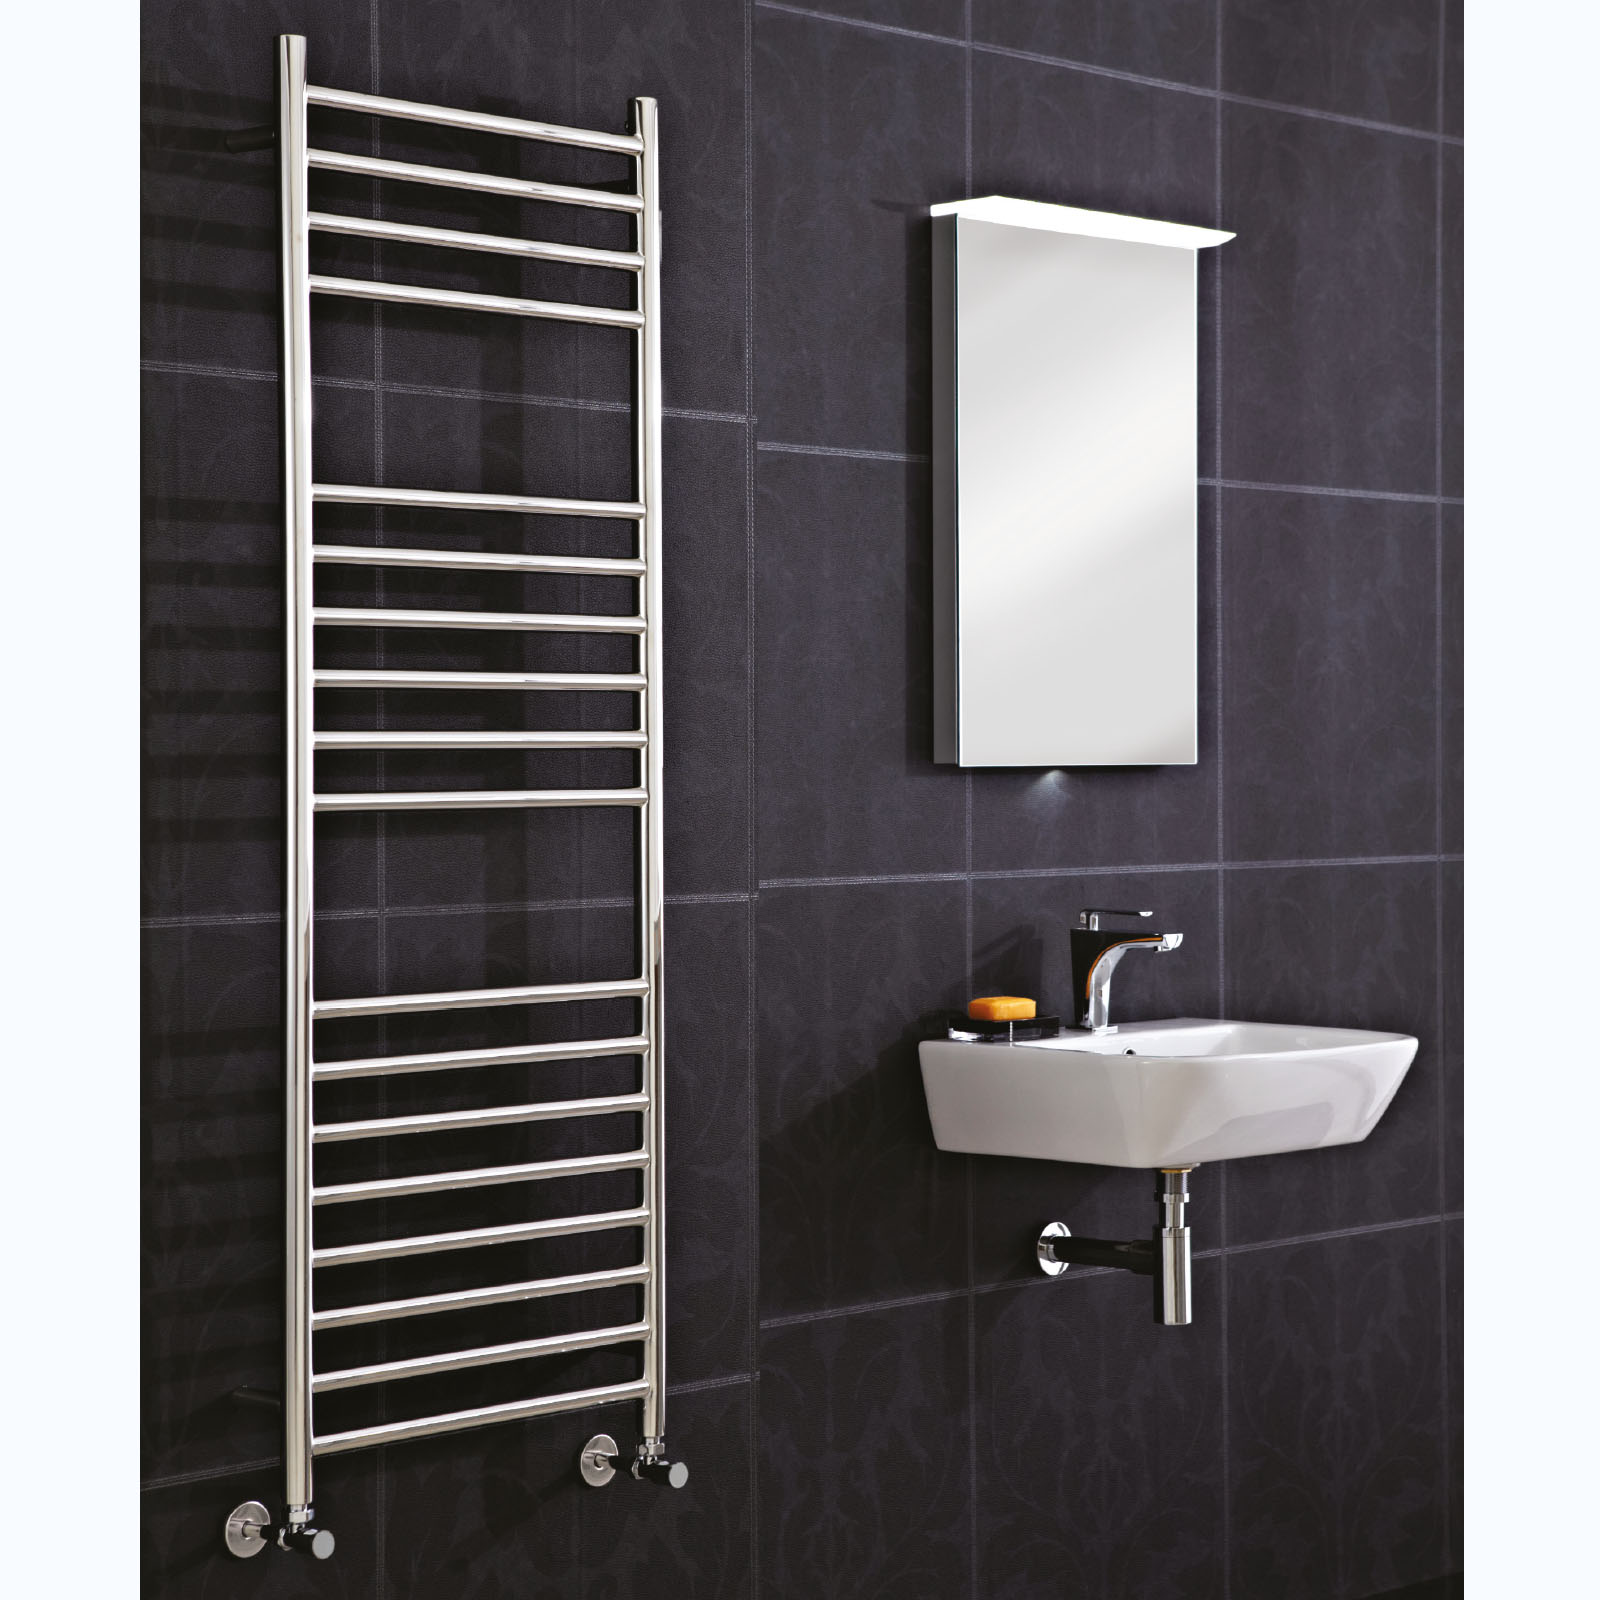 How to choose a heated towel rail for the bathroom